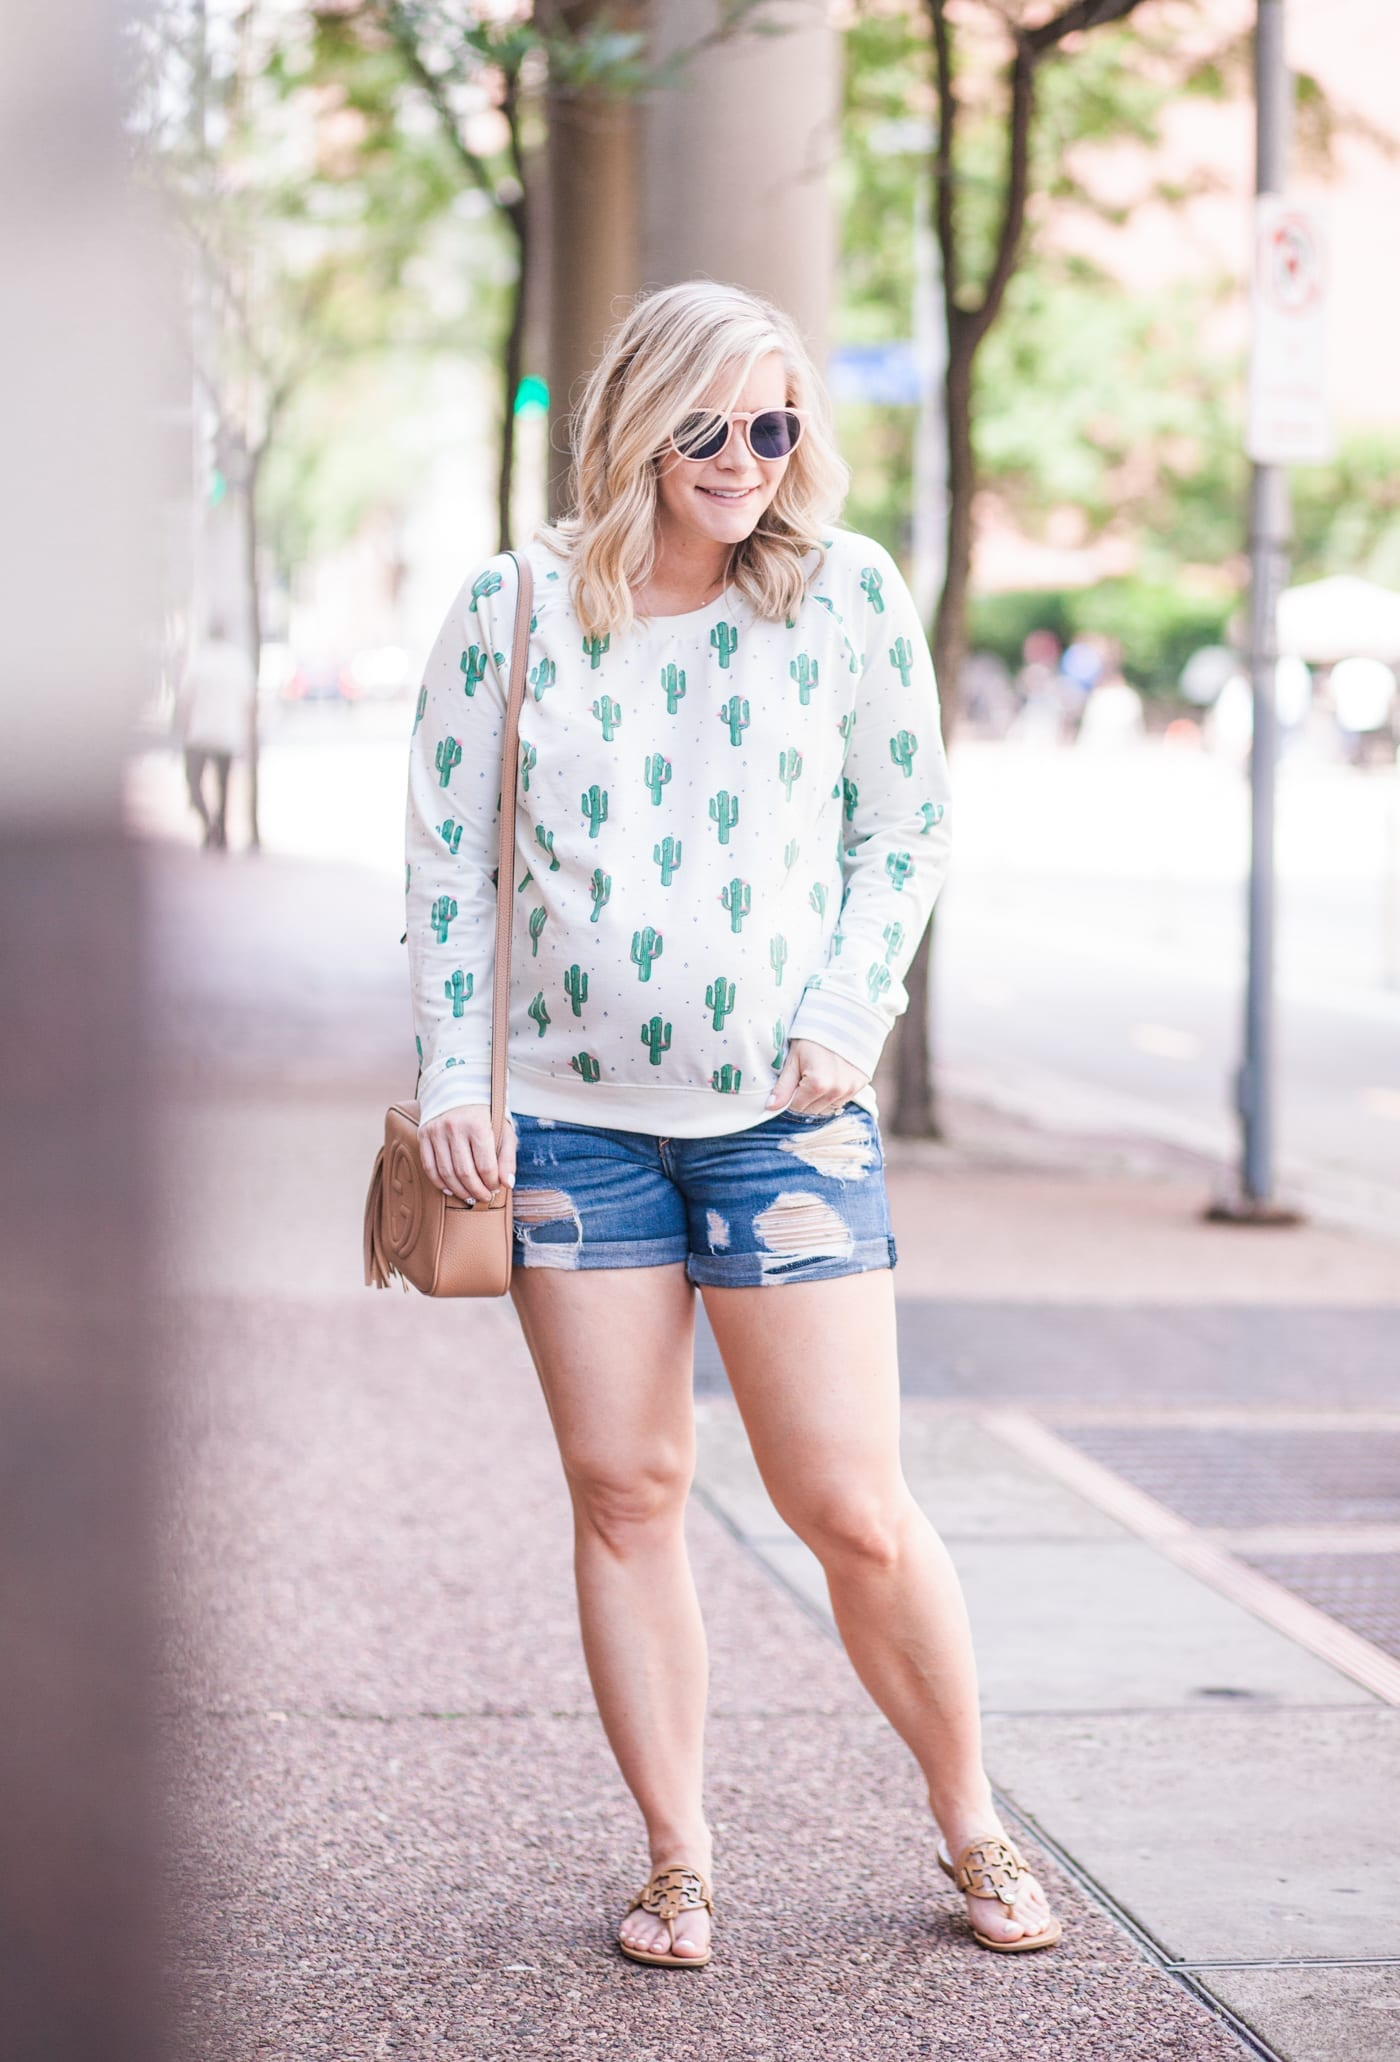 Going Crazy for Cactus Print